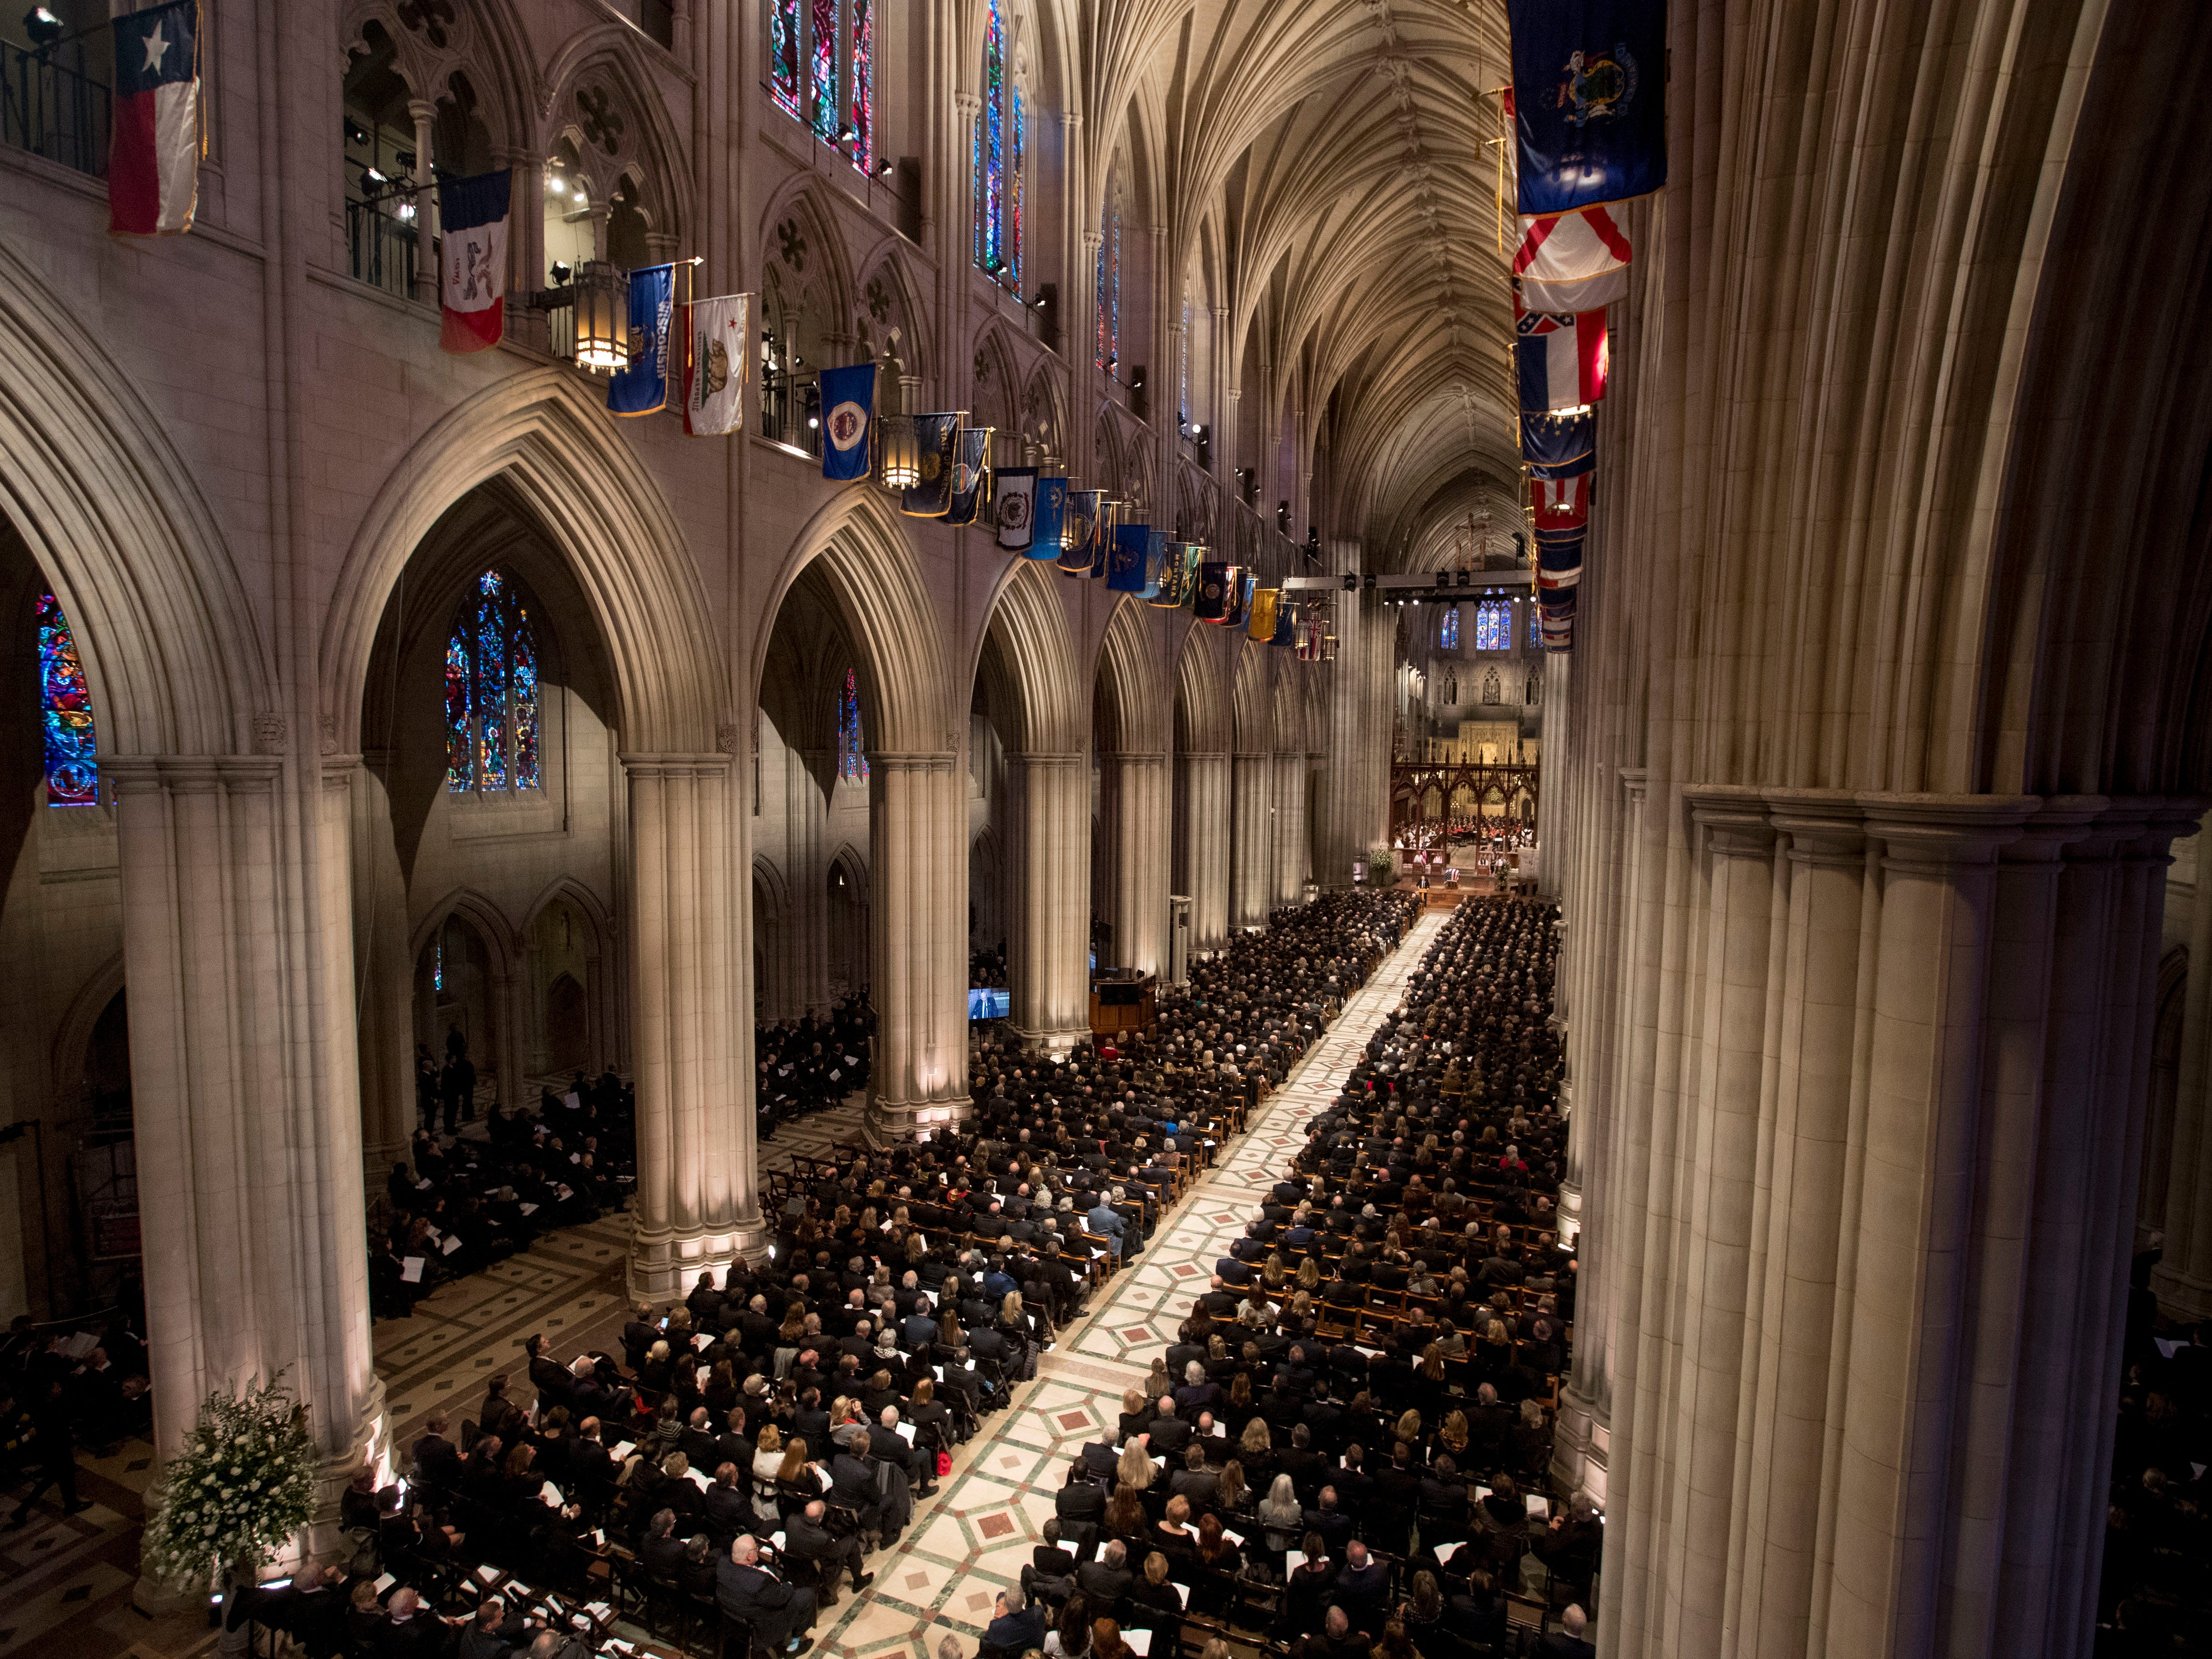 Mourners pack the National Cathedral in Washington for the State Funeral for former President George H.W. Bush.